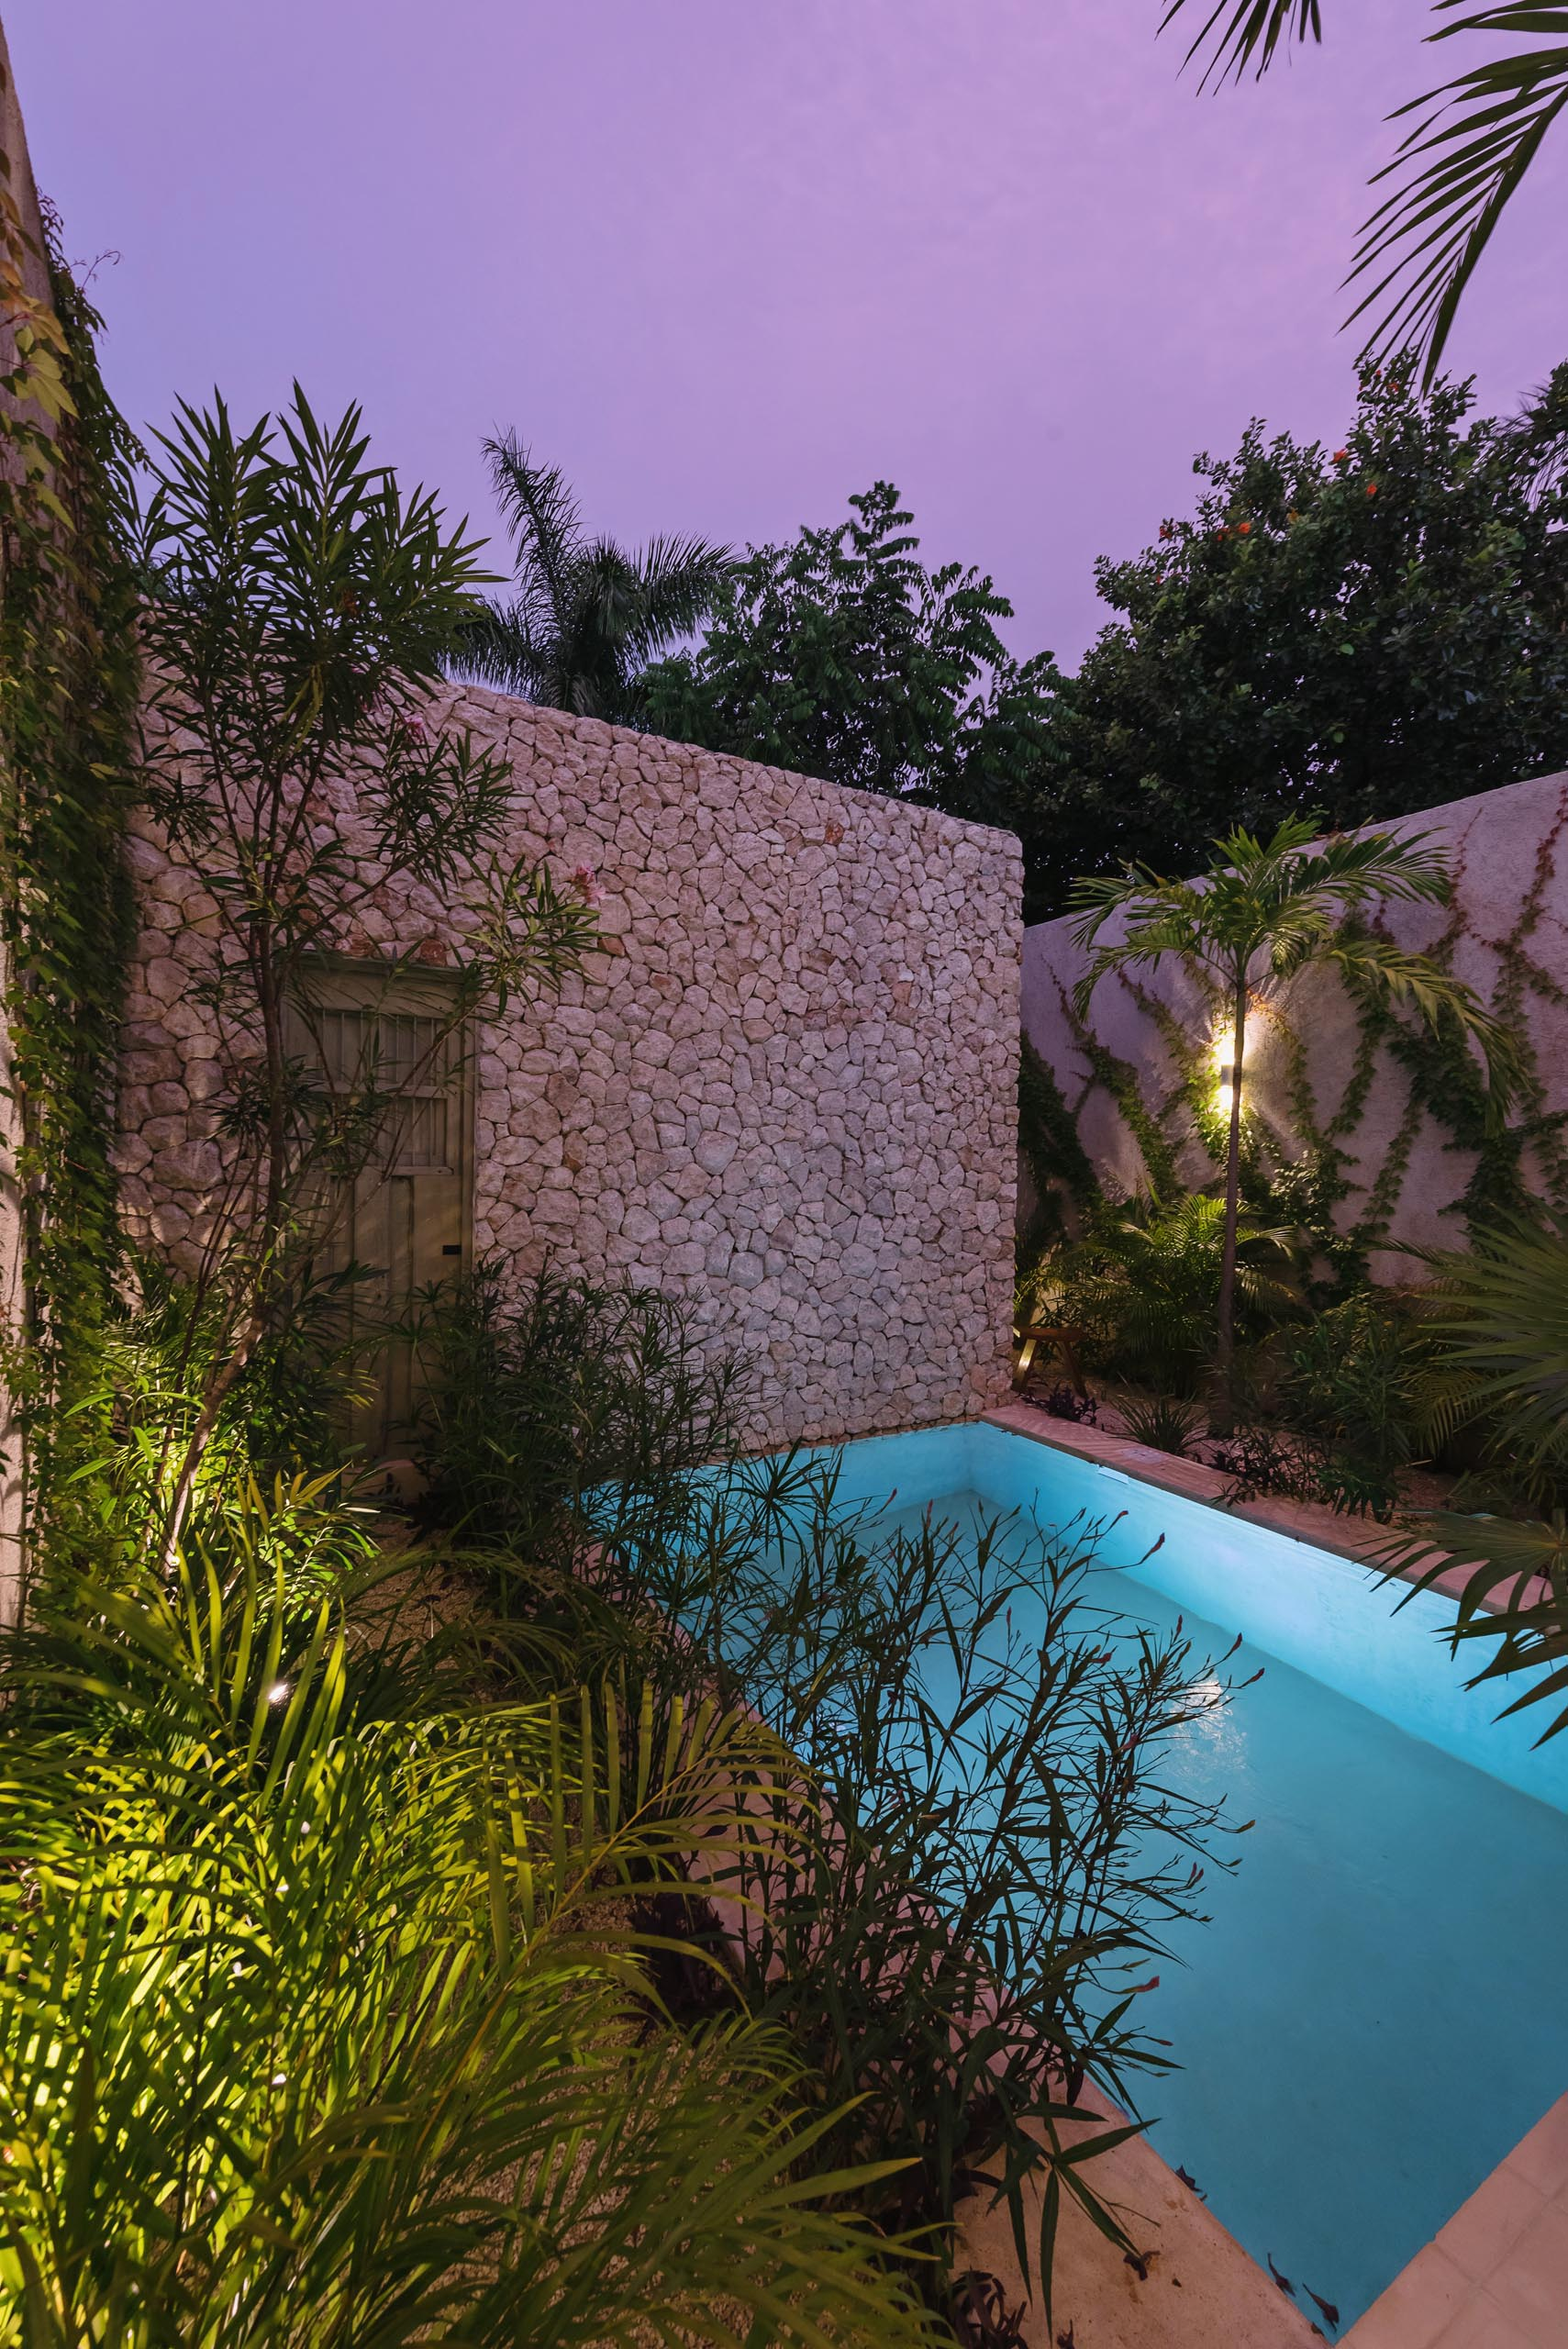 A small swimming pool with a stone wall and plenty of plants.